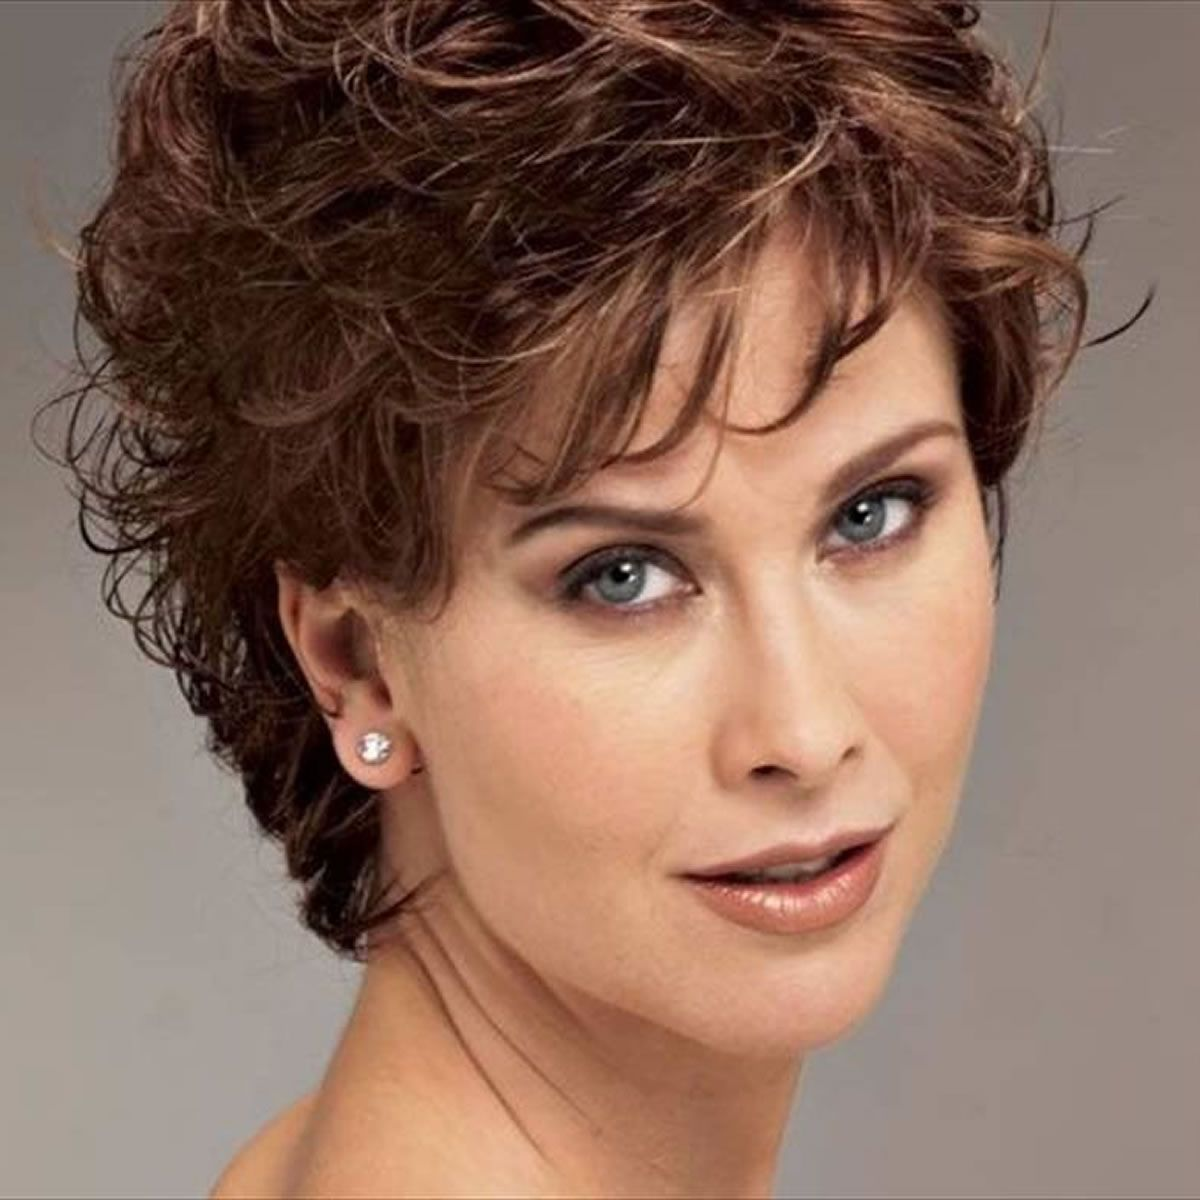 Short Hairstyles 2019 Female Over 50 Natural Short Curly